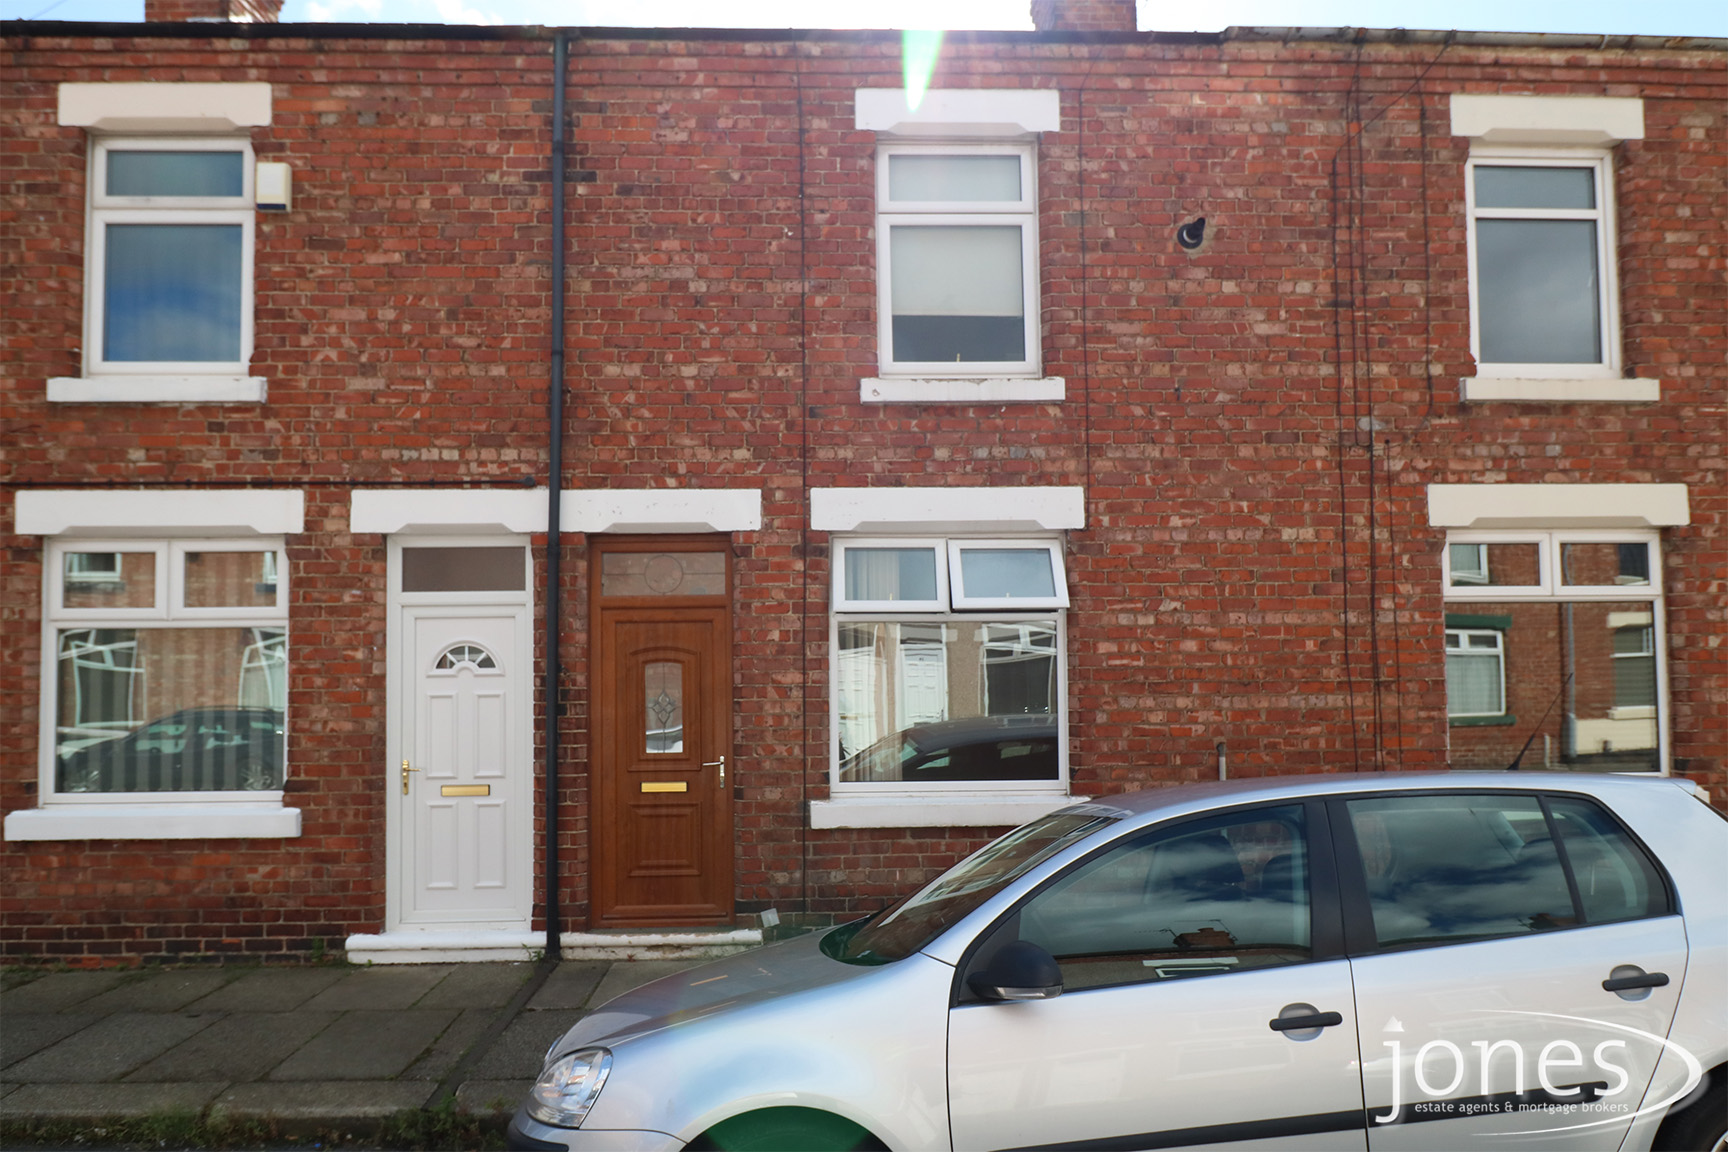 Home for Sale Let - Photo 01 Rosebery Street, Darlington, DL3 6EU